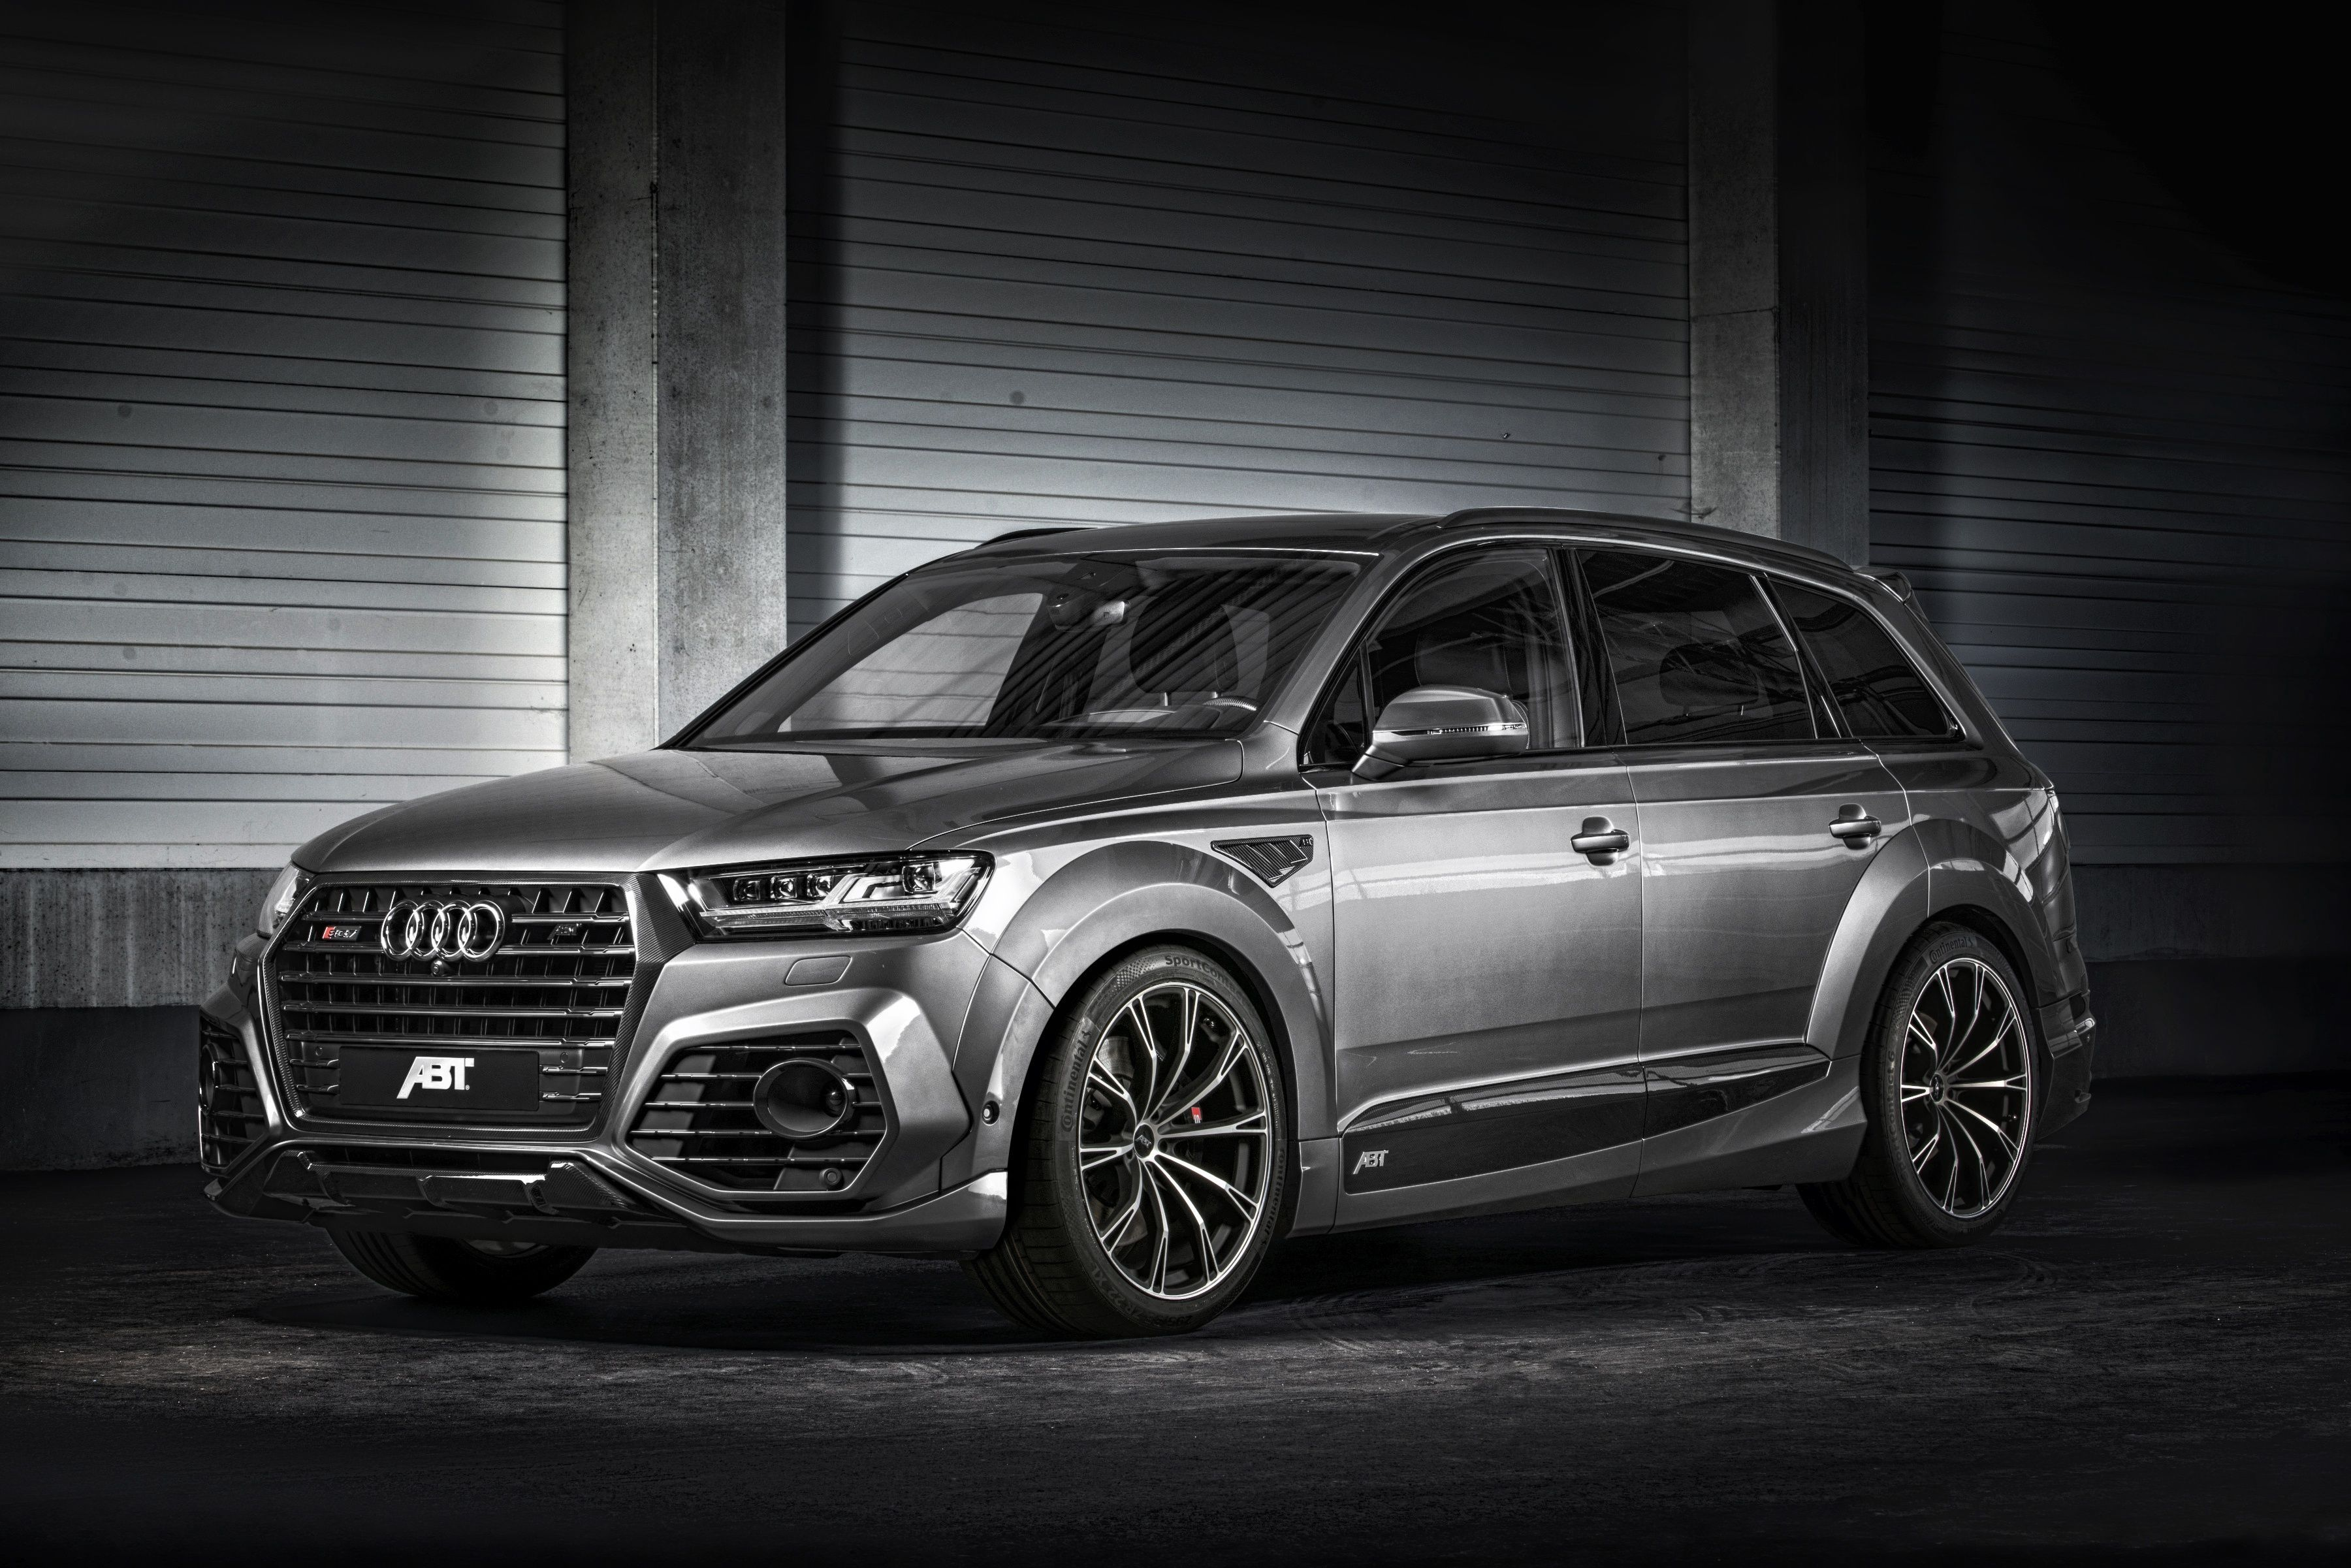 Audi Q7 ABT, HD Cars, 4k Wallpapers, Image, Backgrounds, Photos and